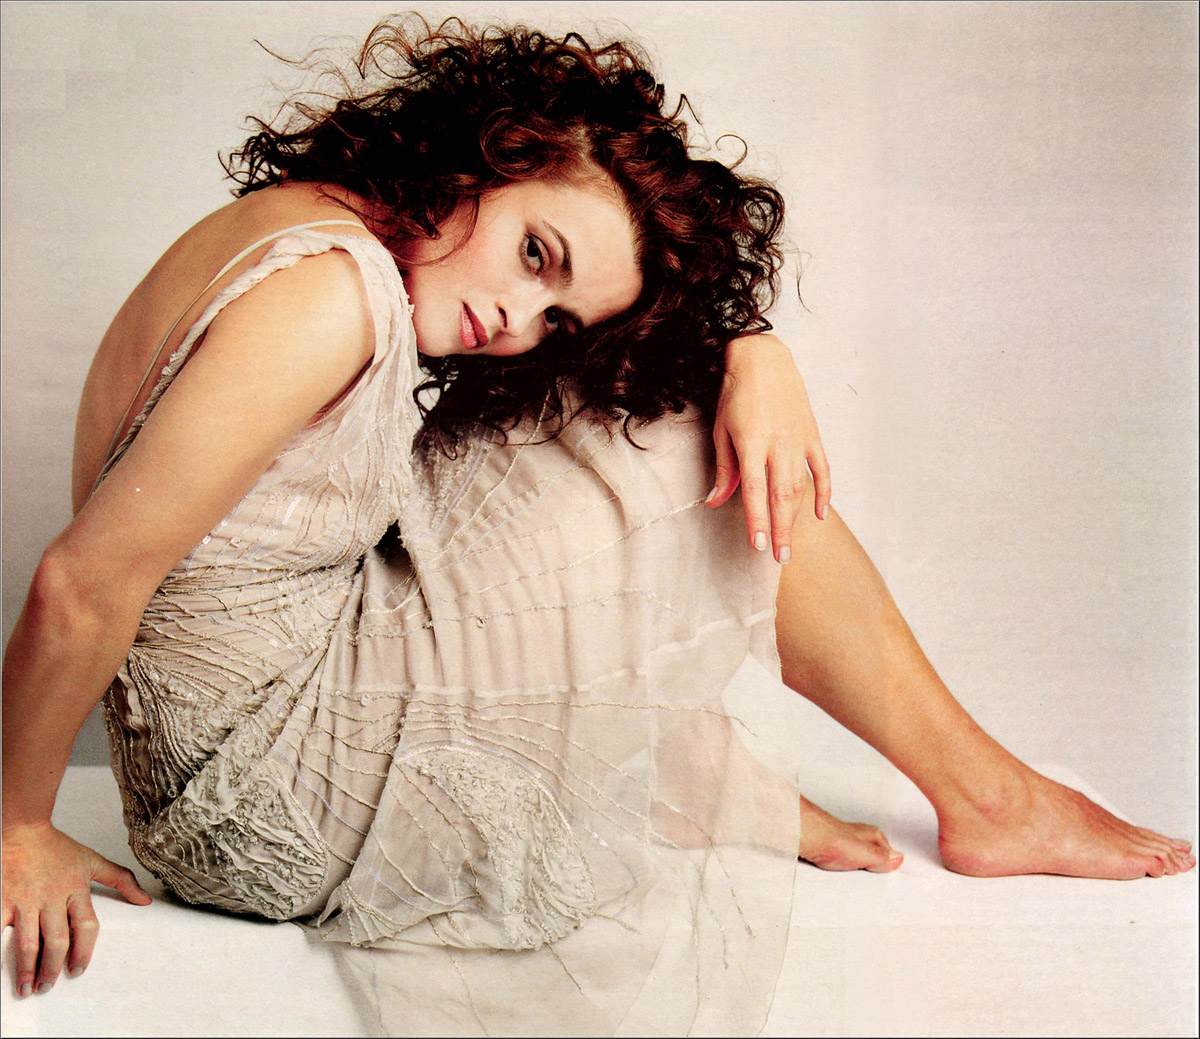 Helena Bonham Carter - Images Colection